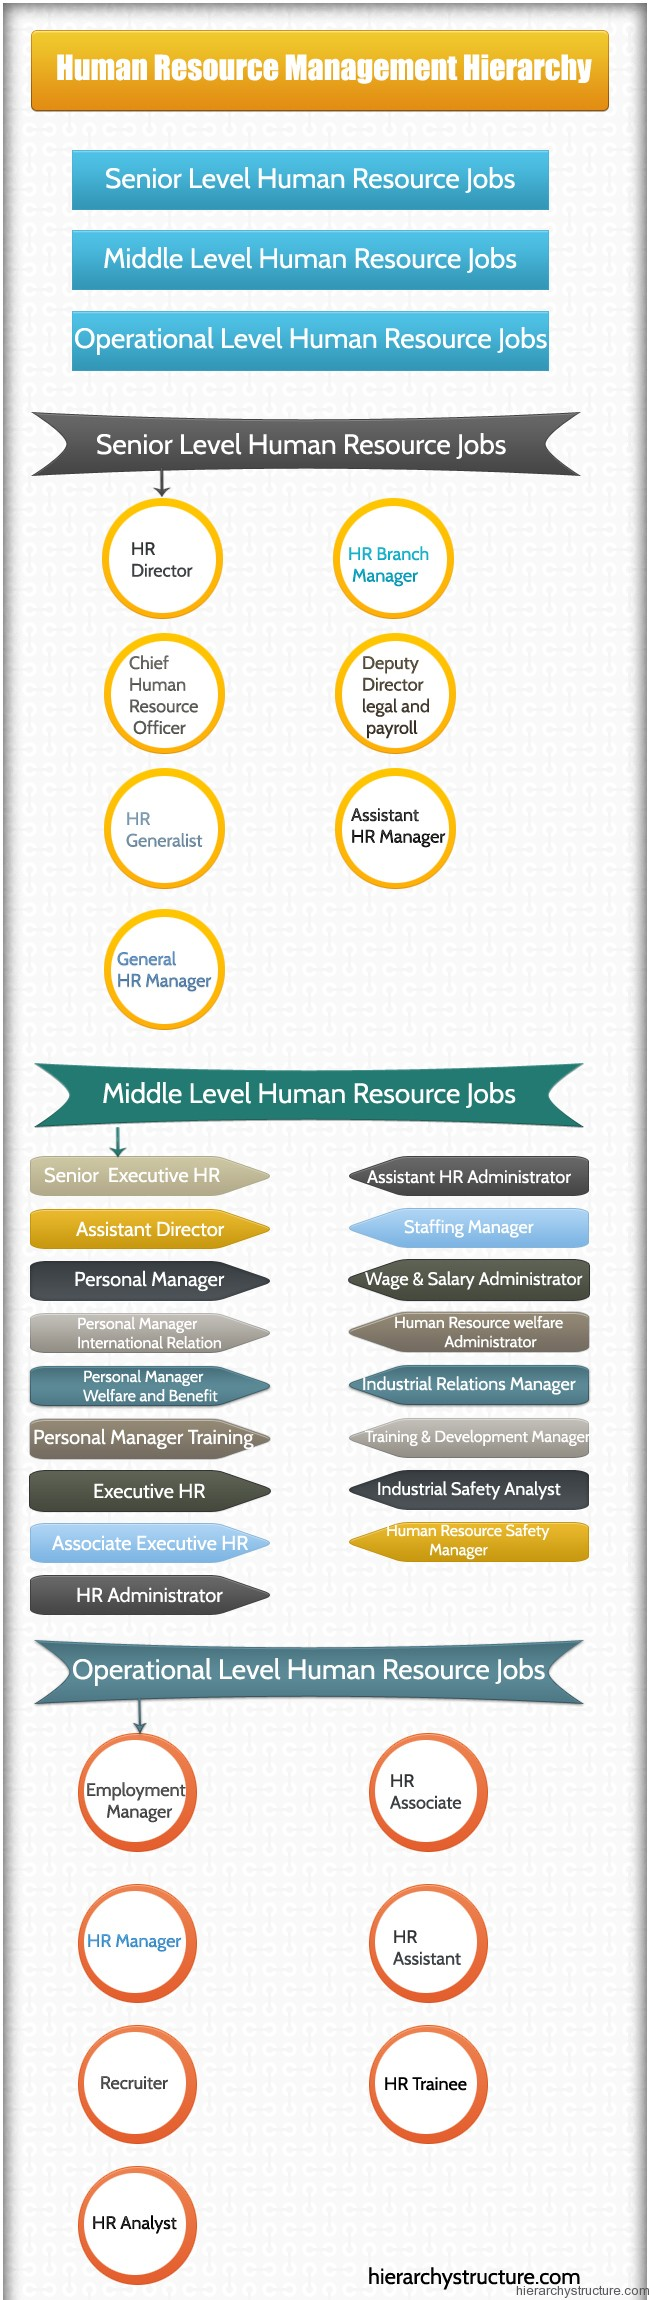 Human Resource Management Hierarchy